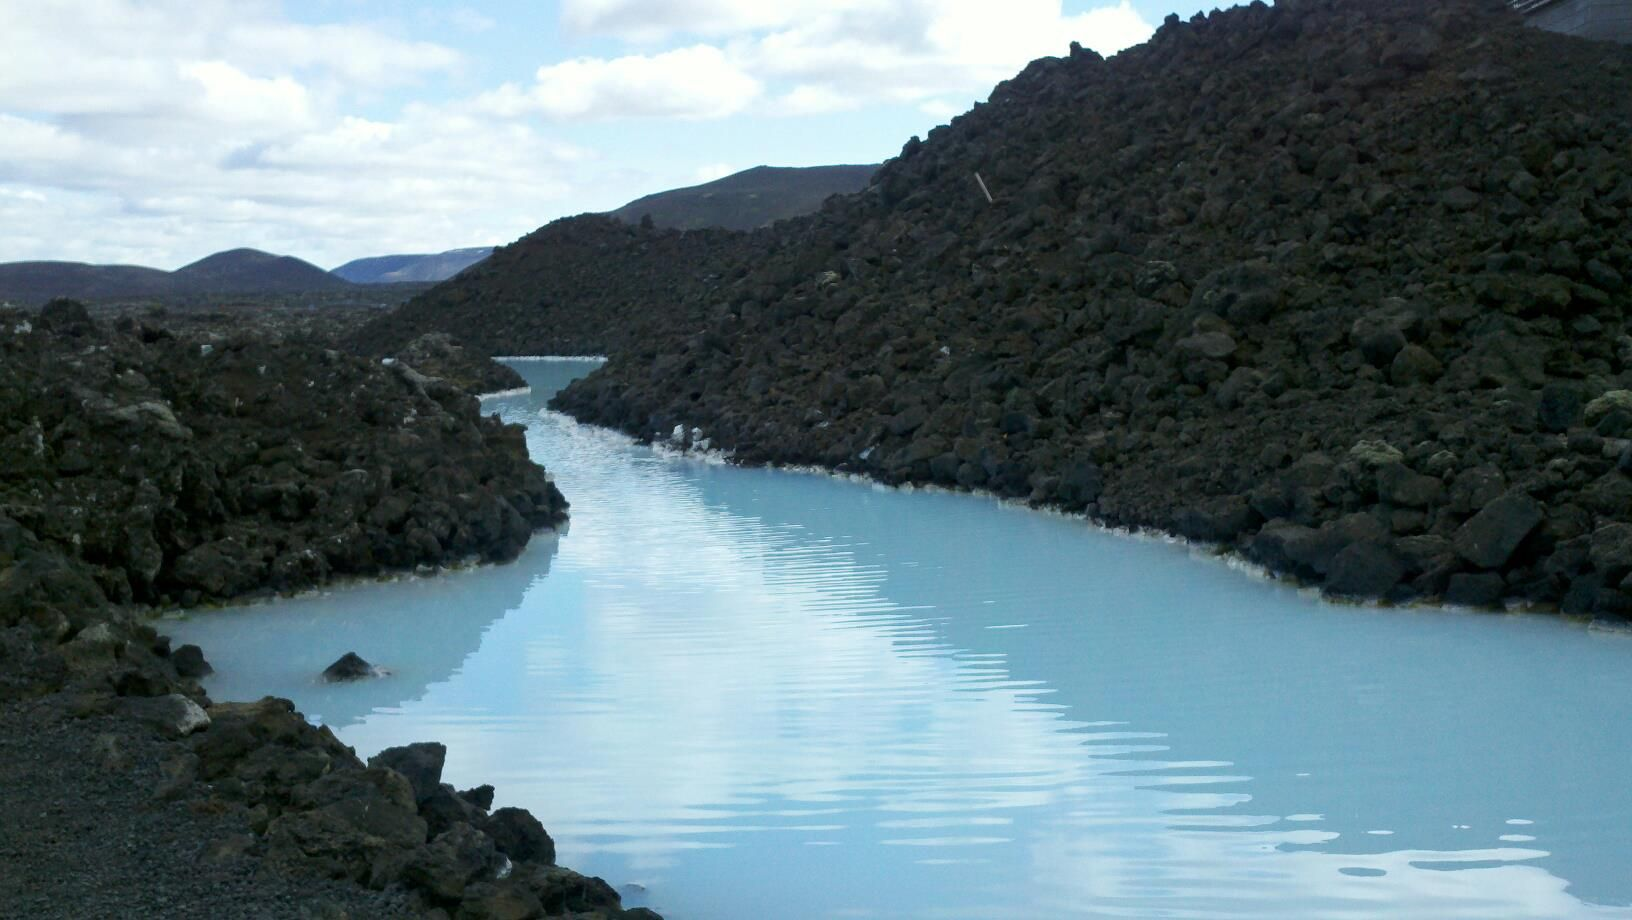 The Blue Lagoon, Iceland, taken by Mindy Gudmundson Frye May 2012